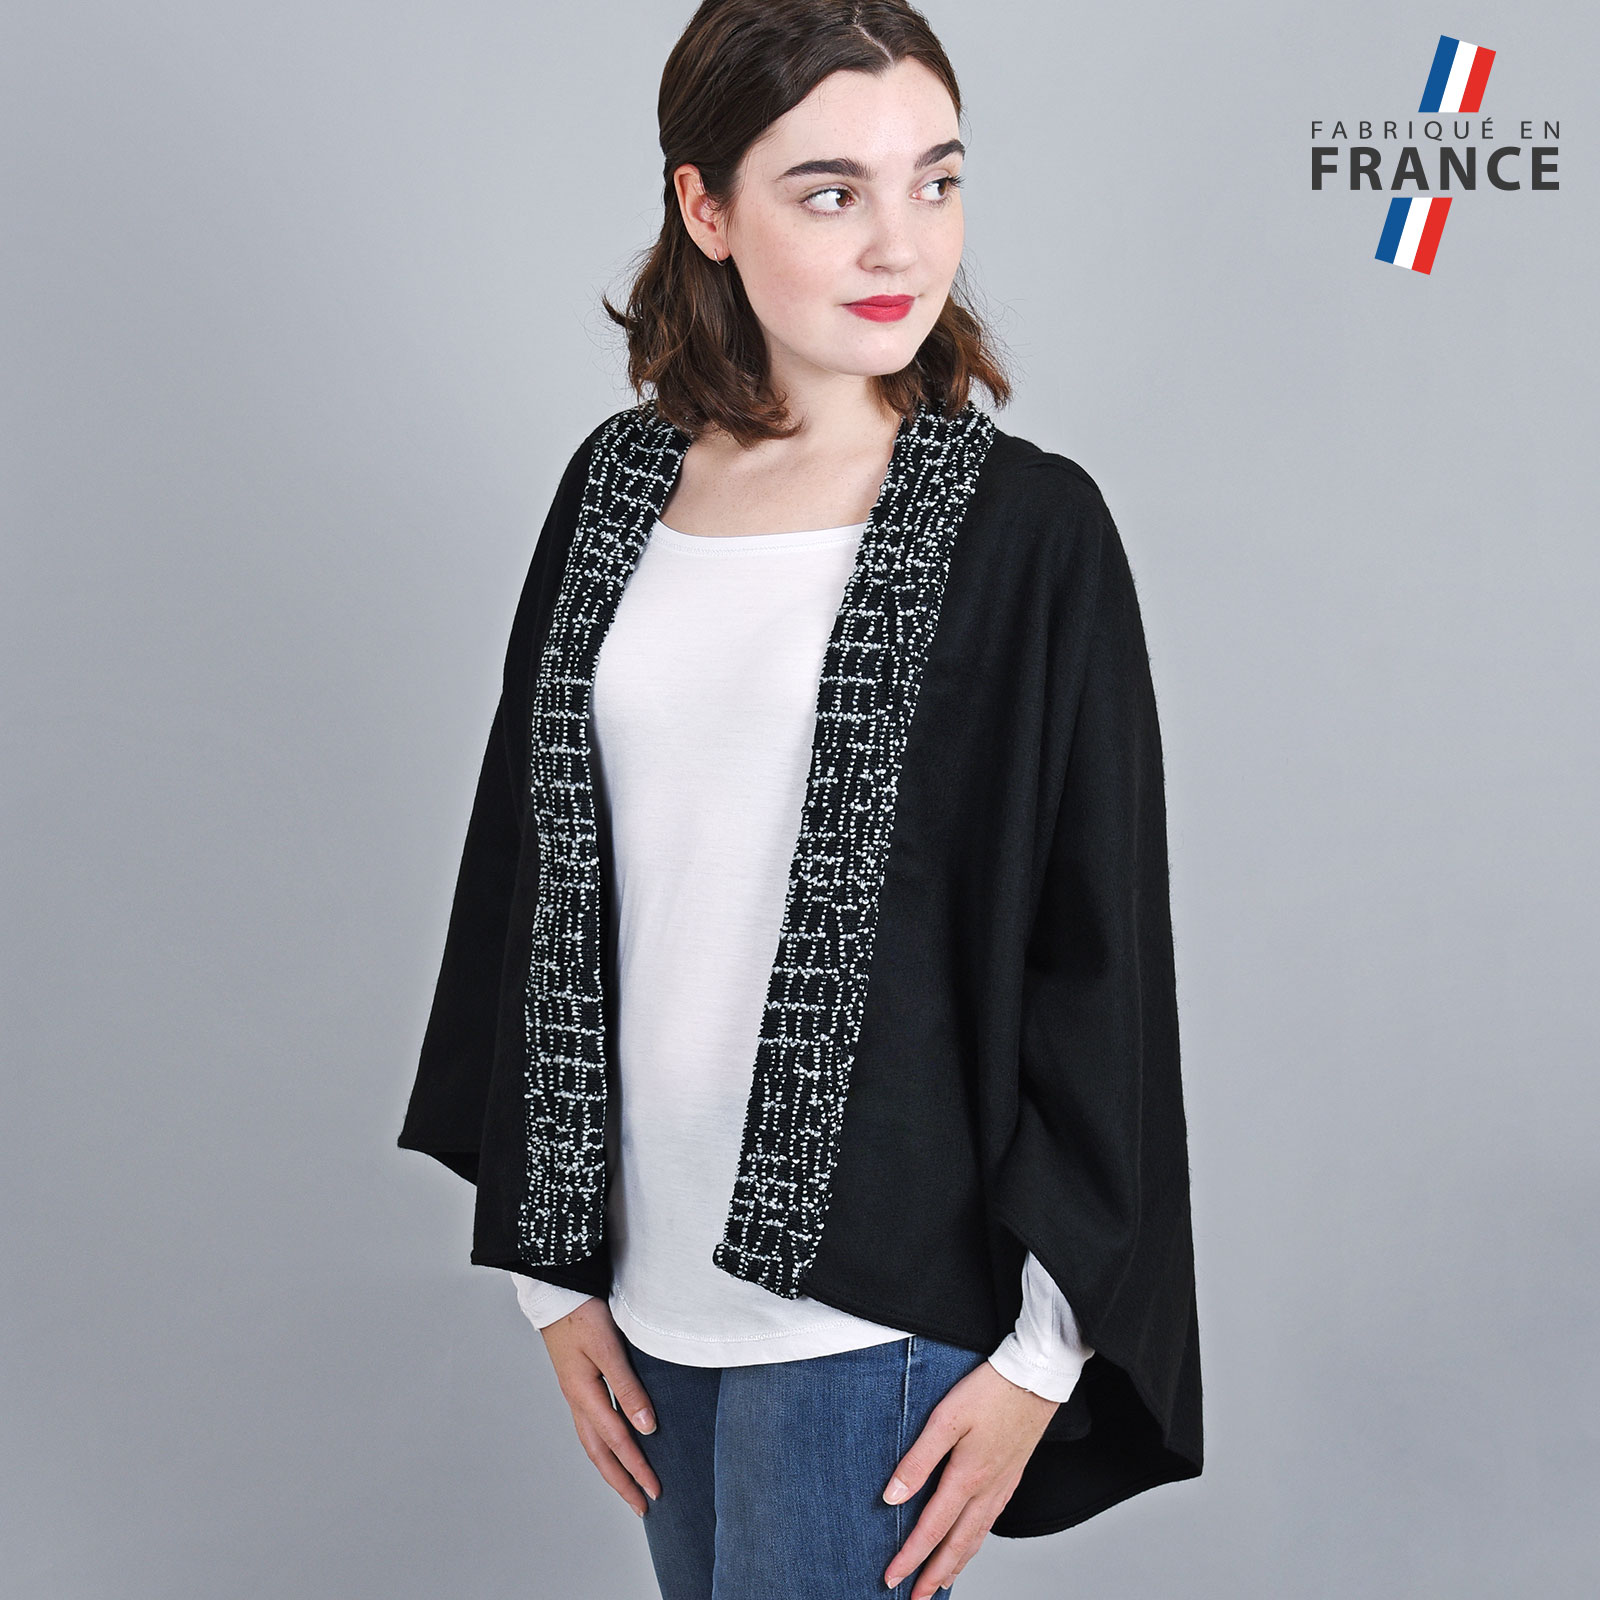 AT-03248-VF16-1-LB_FR-poncho-a-capuche-perles-gris-fabrication-francaise